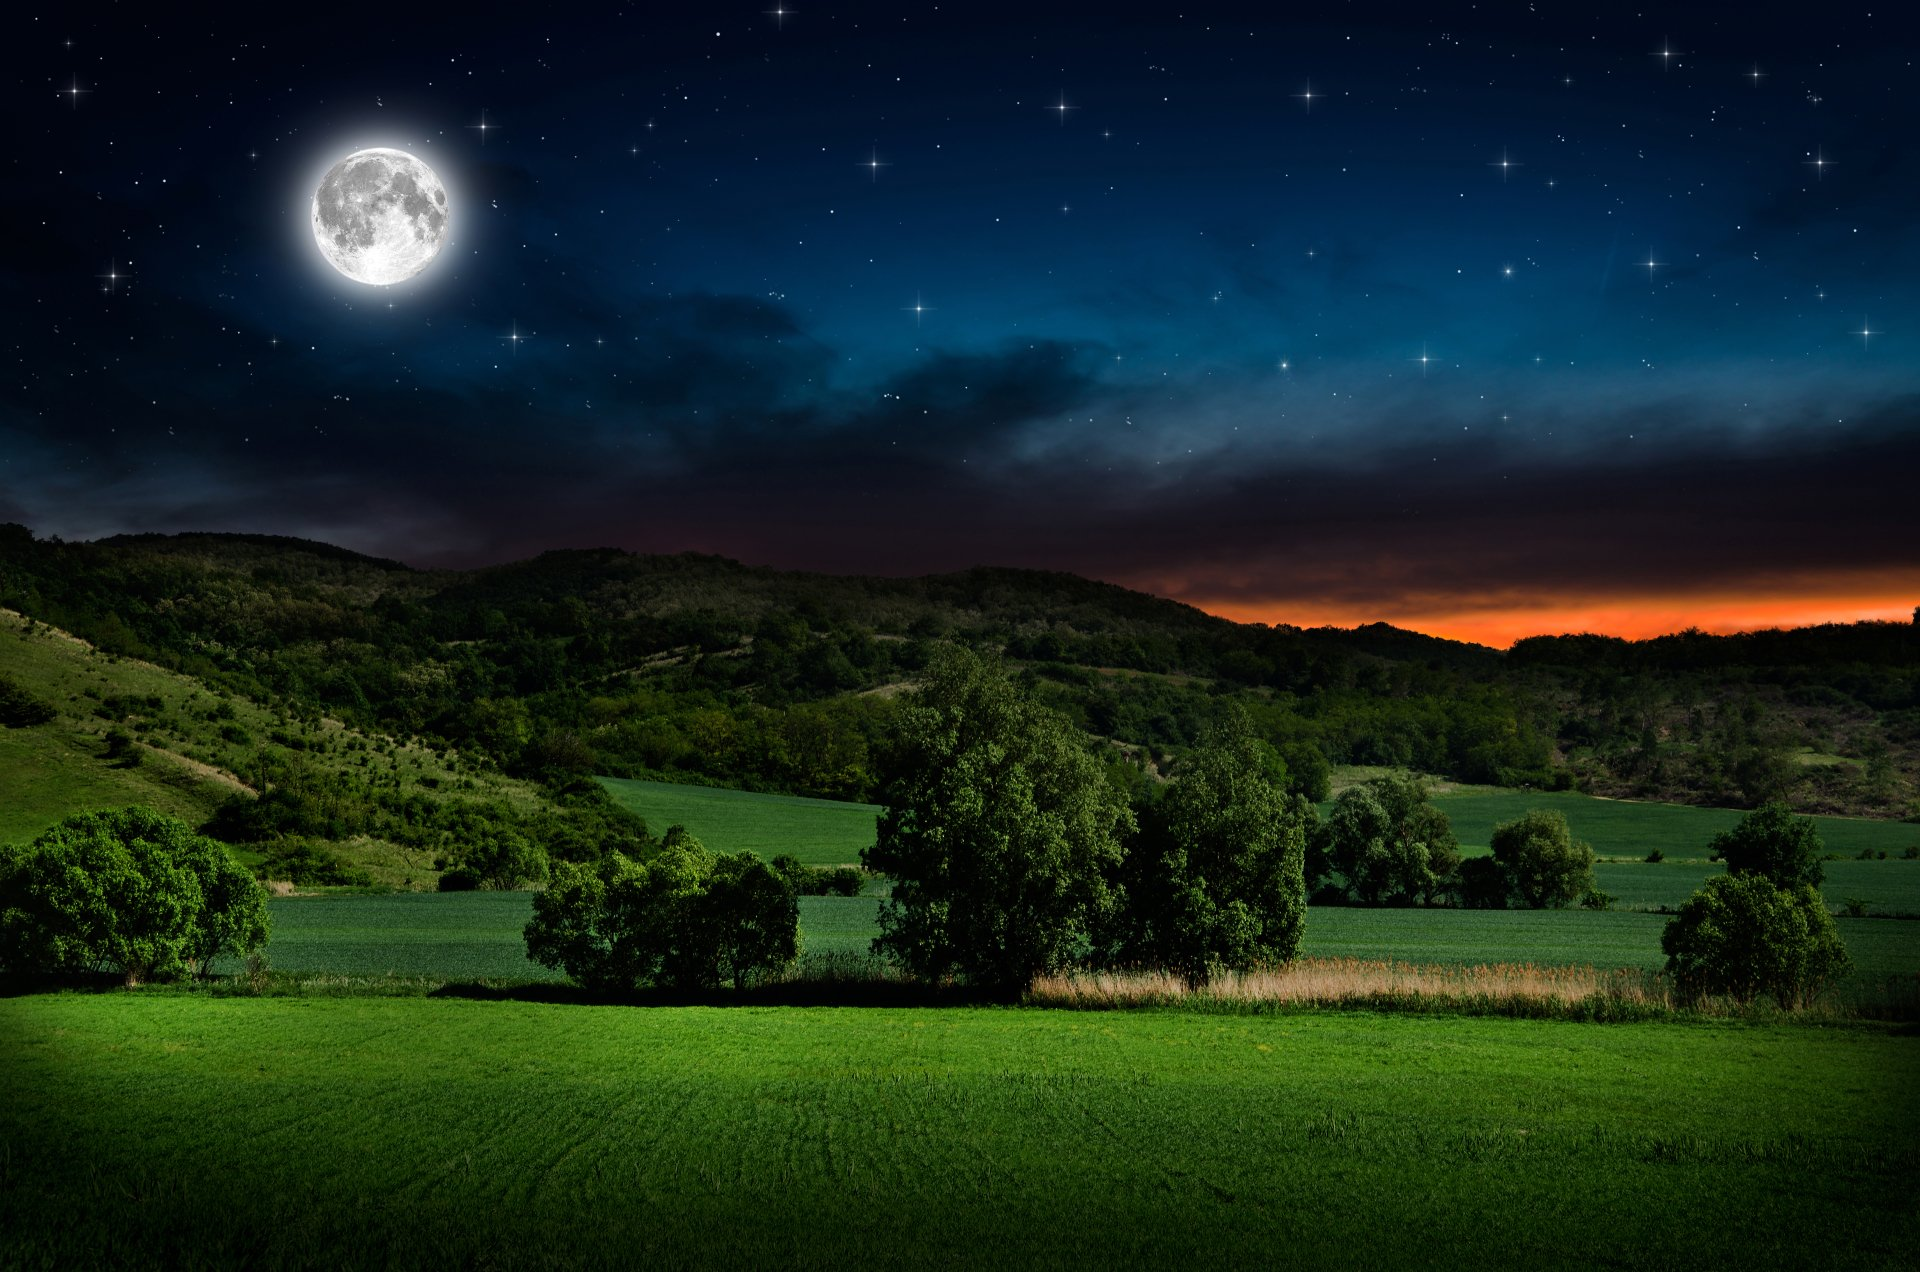 Full Moon And Starry Sky Over Green Field 4k Ultra HD